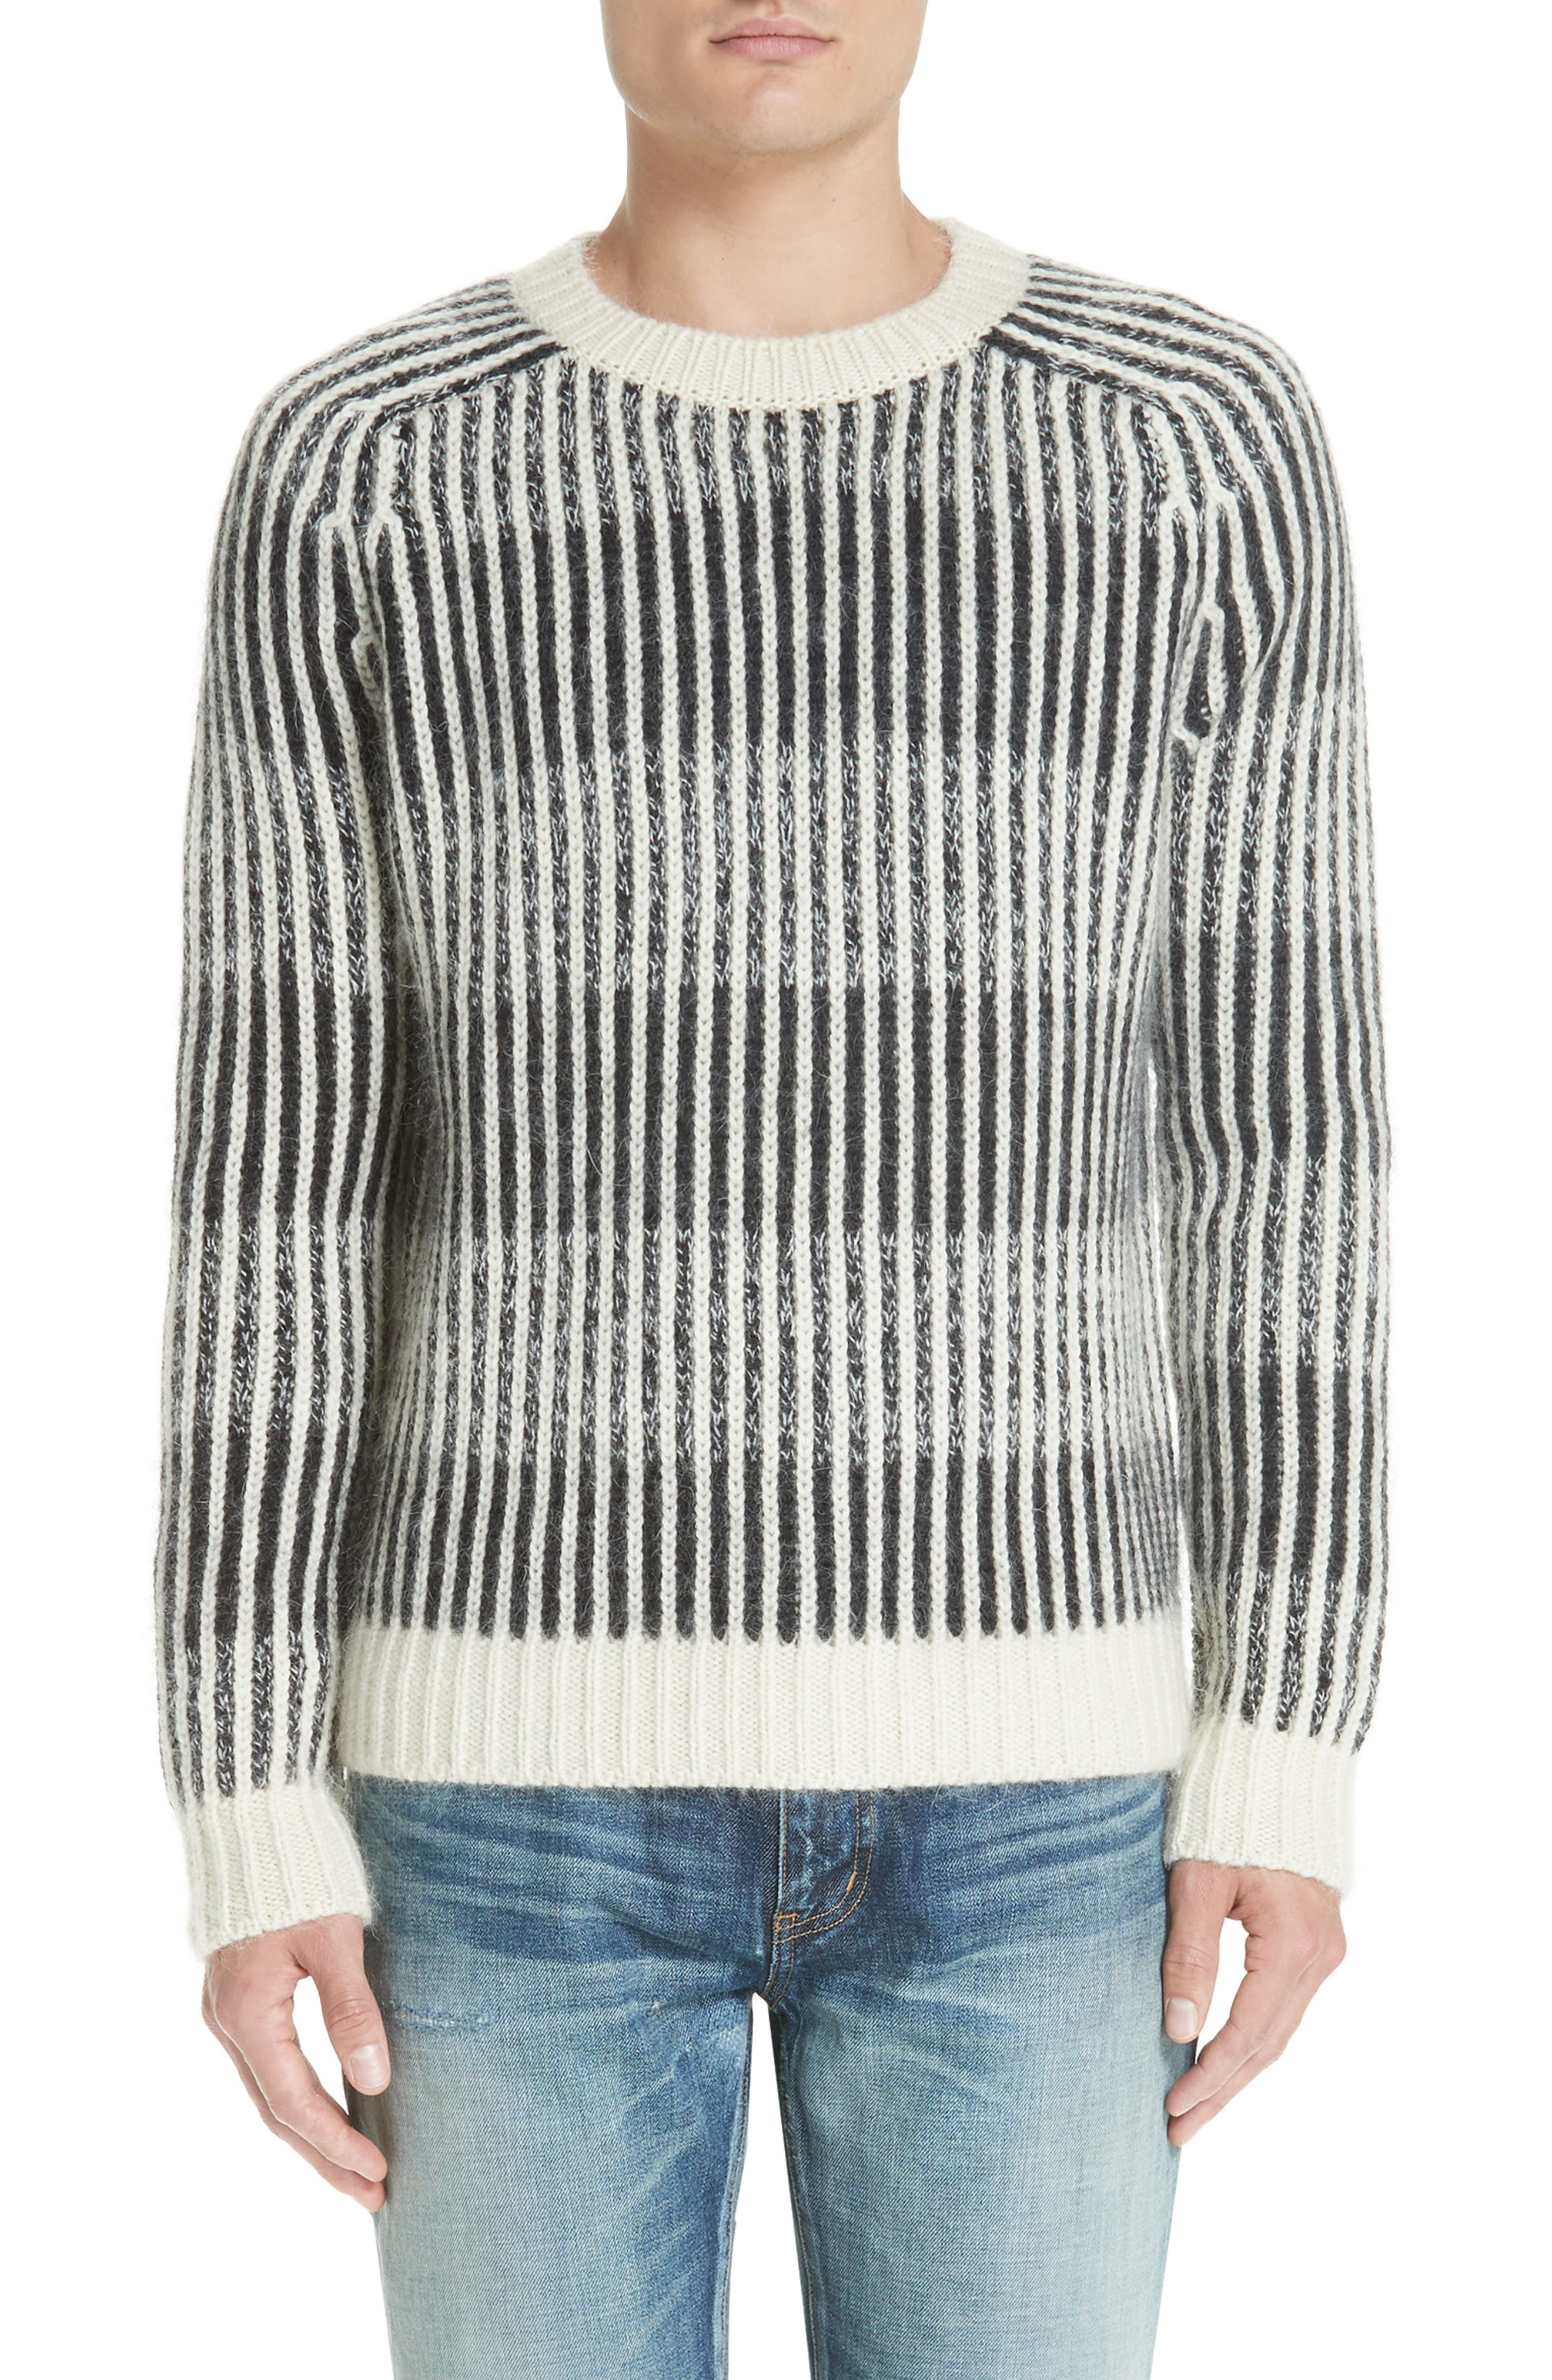 SAINT LAURENT Contrast Rib Wool & Alpaca Blend Sweater, Main, color, 134